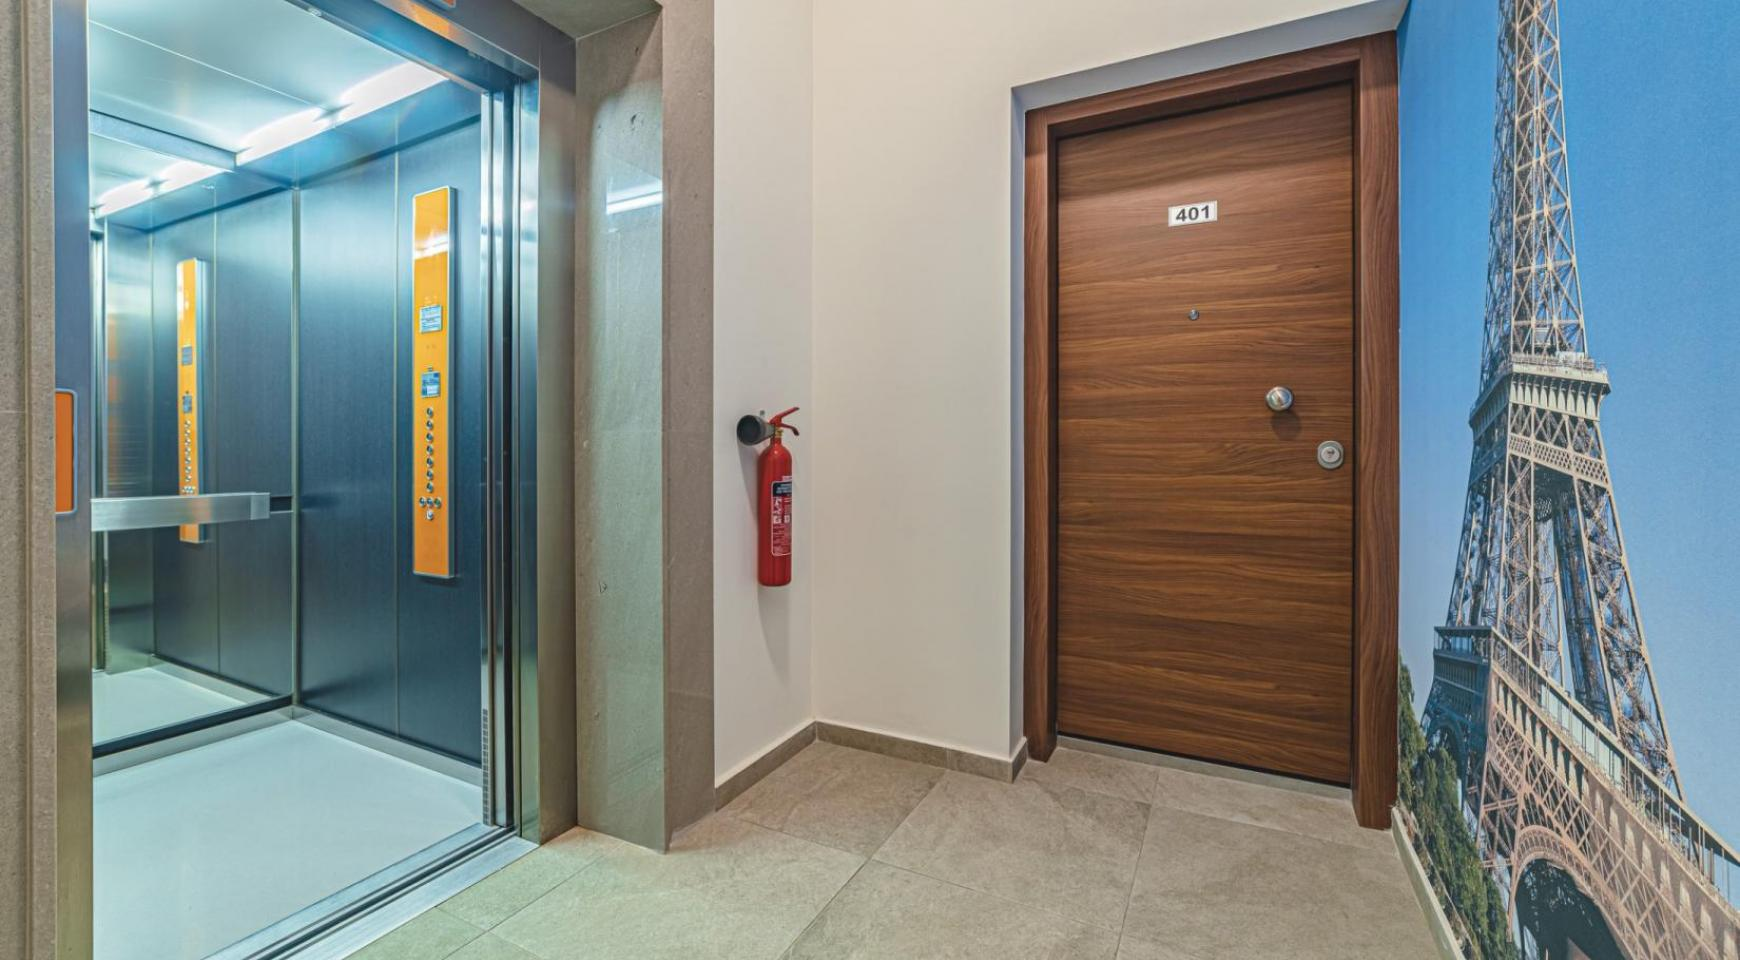 Urban City Residences, Apt. B 101. 3 Bedroom Apartment within a New Complex in the City Centre - 19